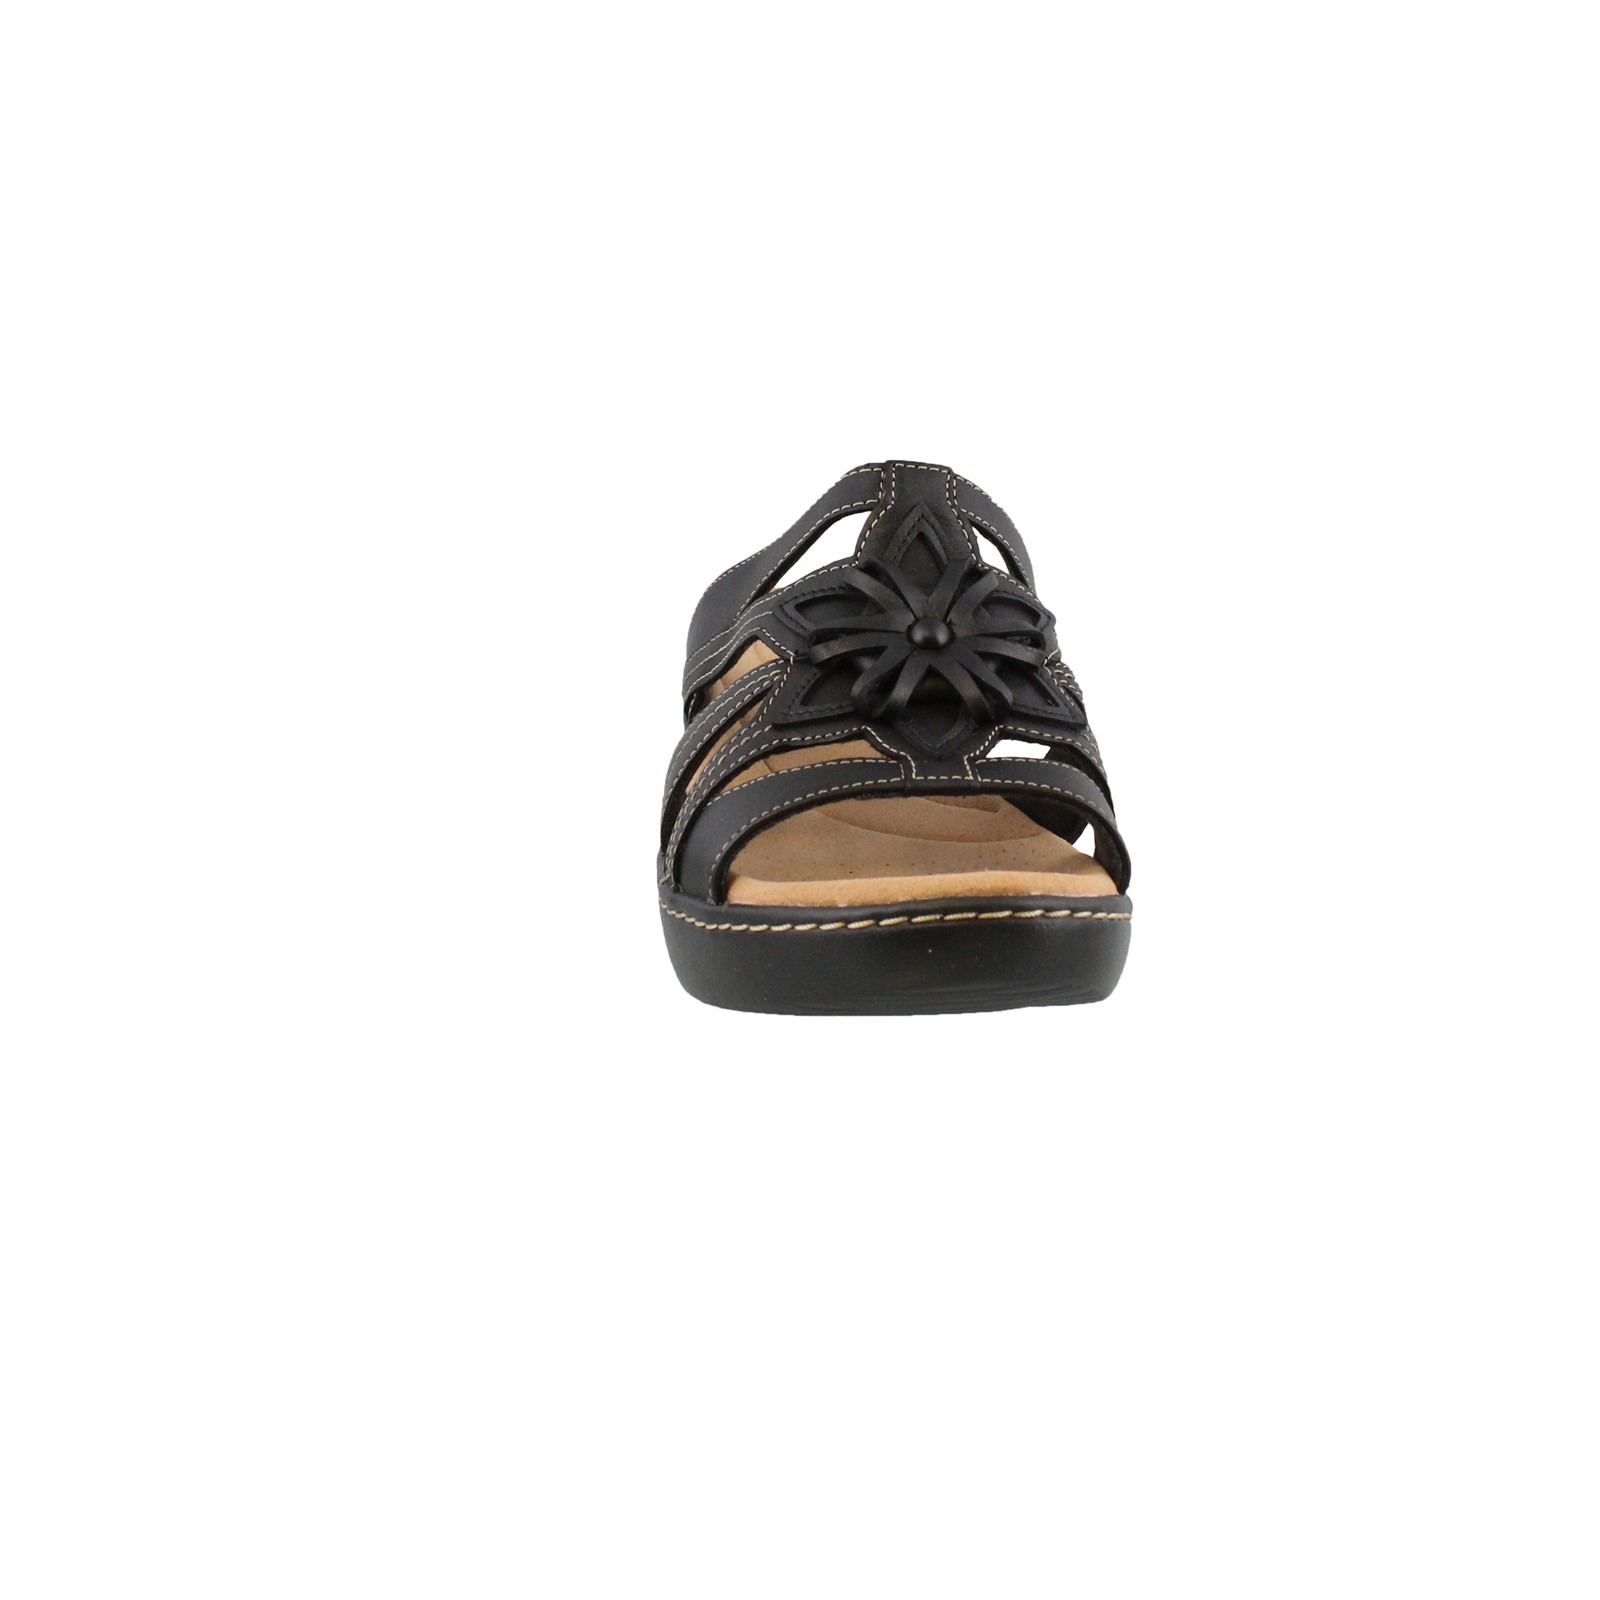 6ac6a9ab4385 Next. add to favorites. Women s Clarks